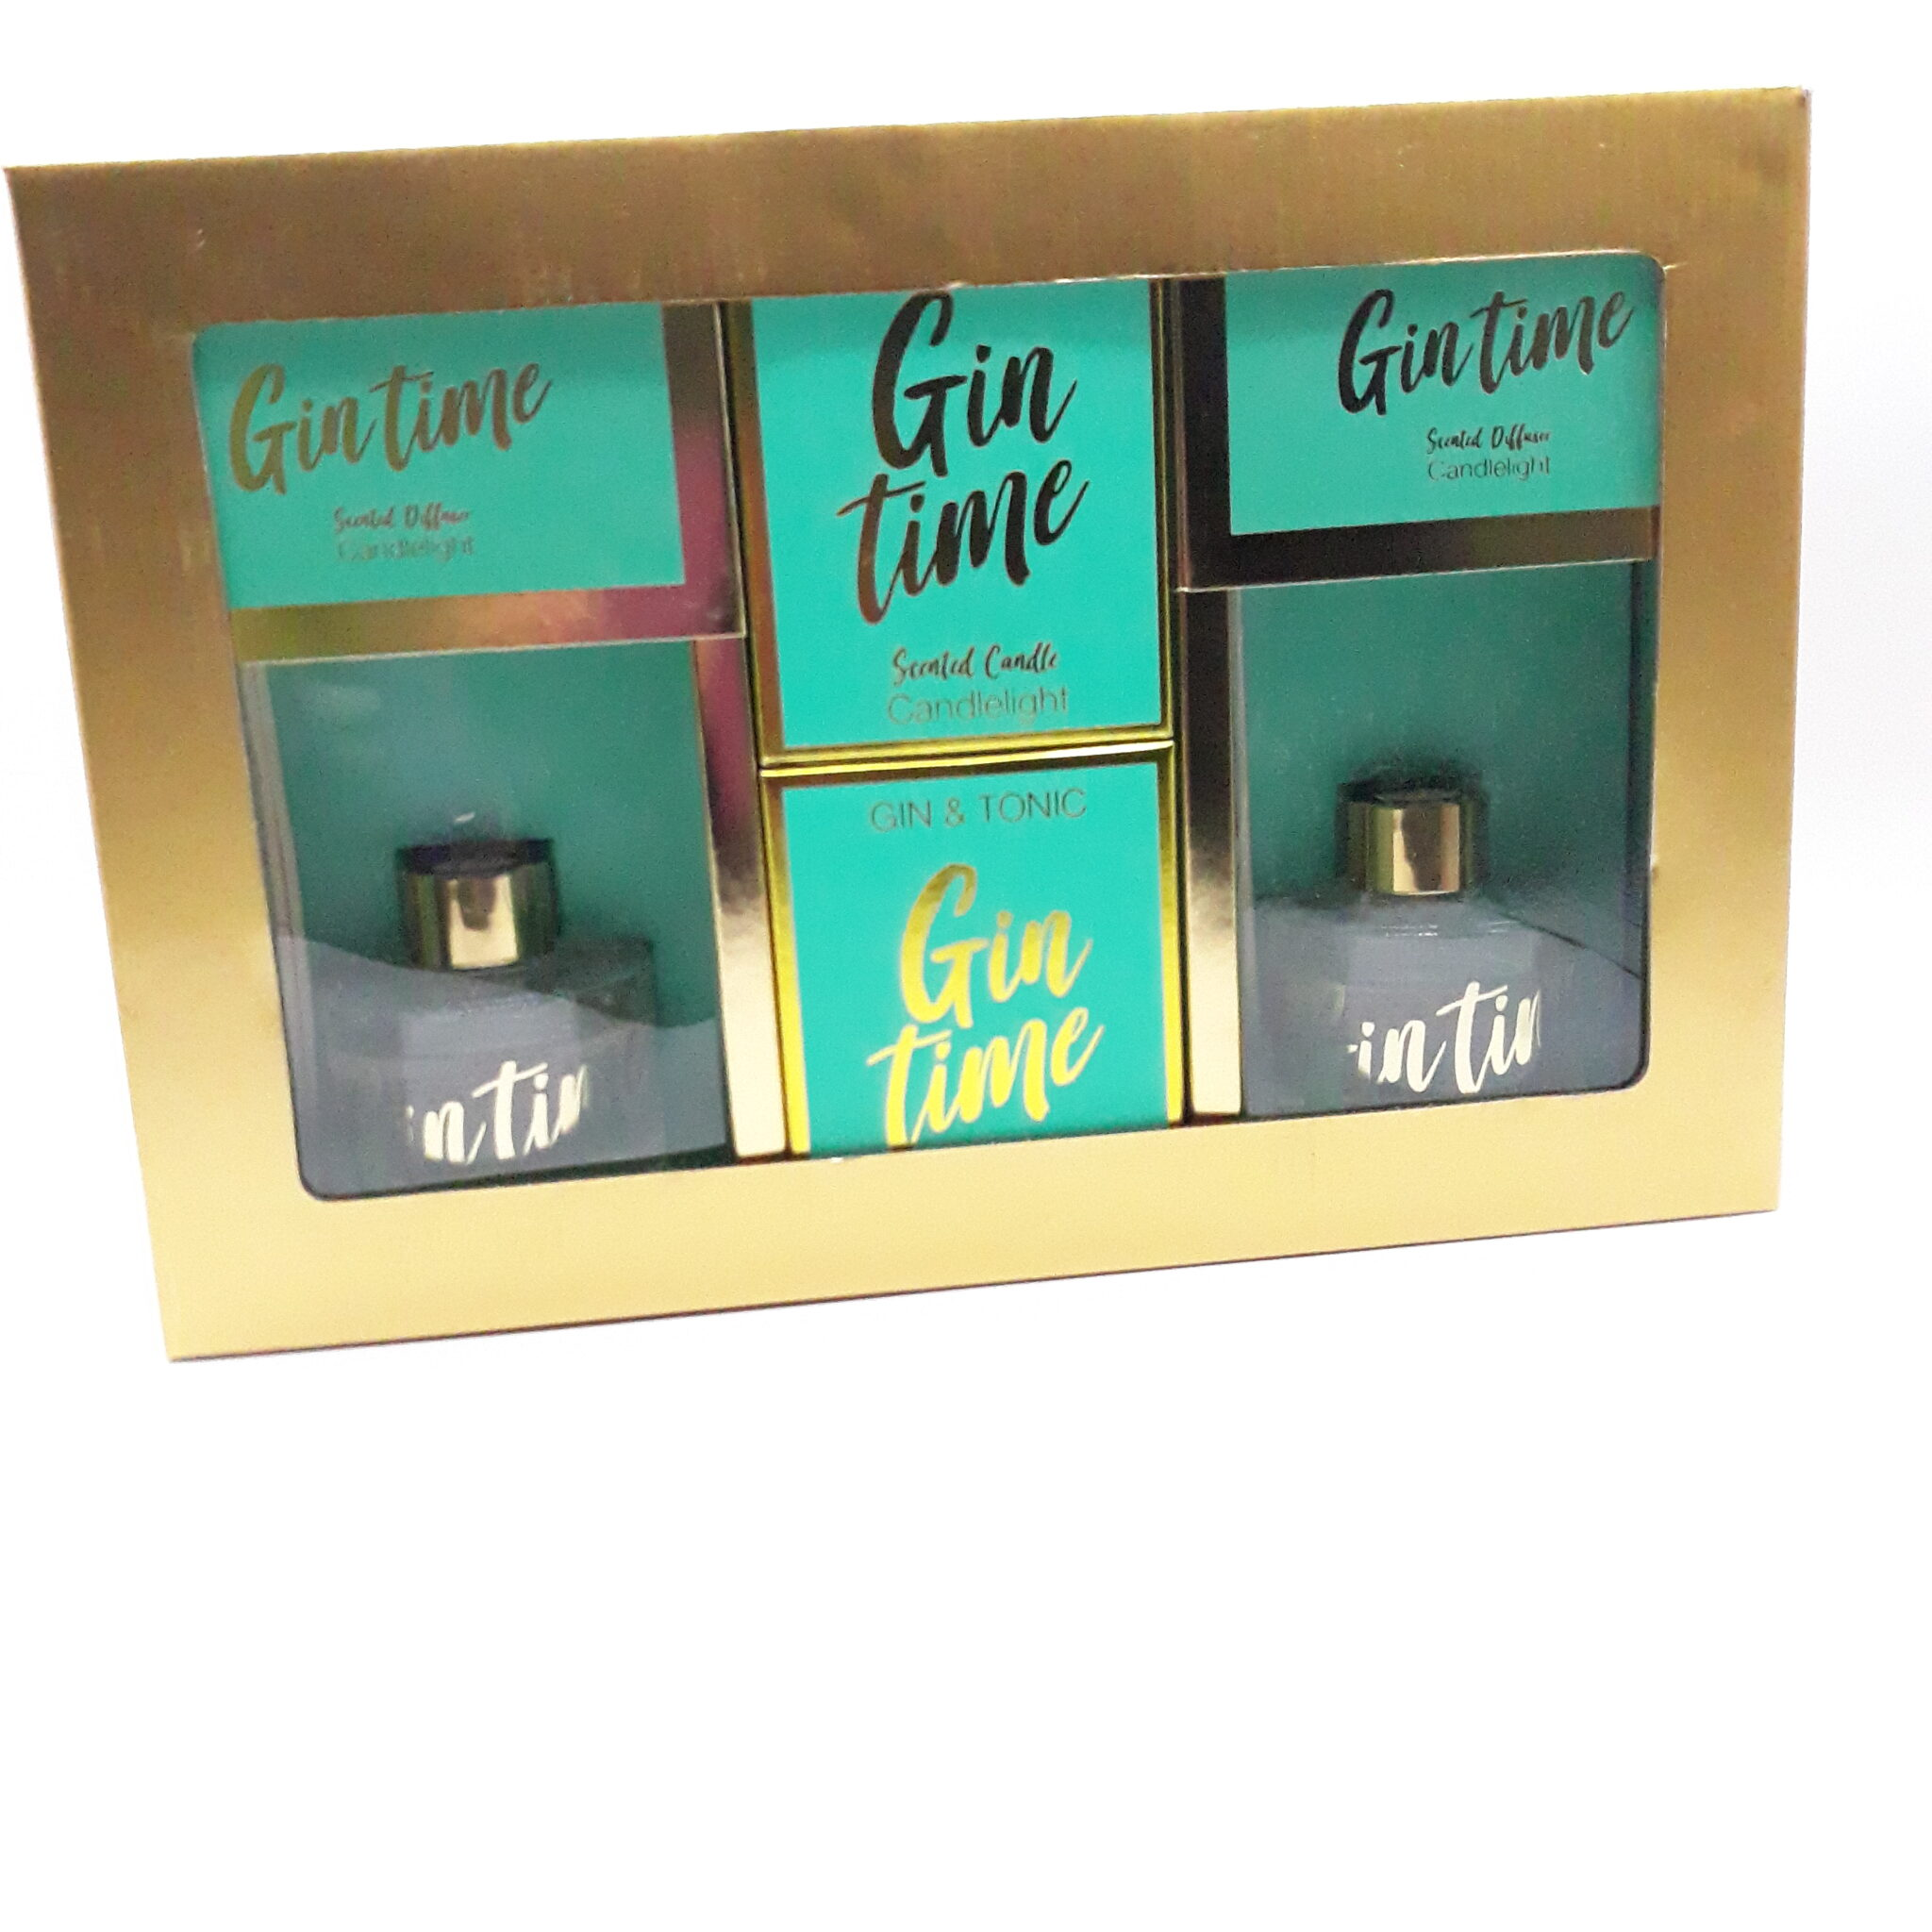 Gin & Tonic (Gin Time) Reed diffuser and scented Candle Gift set